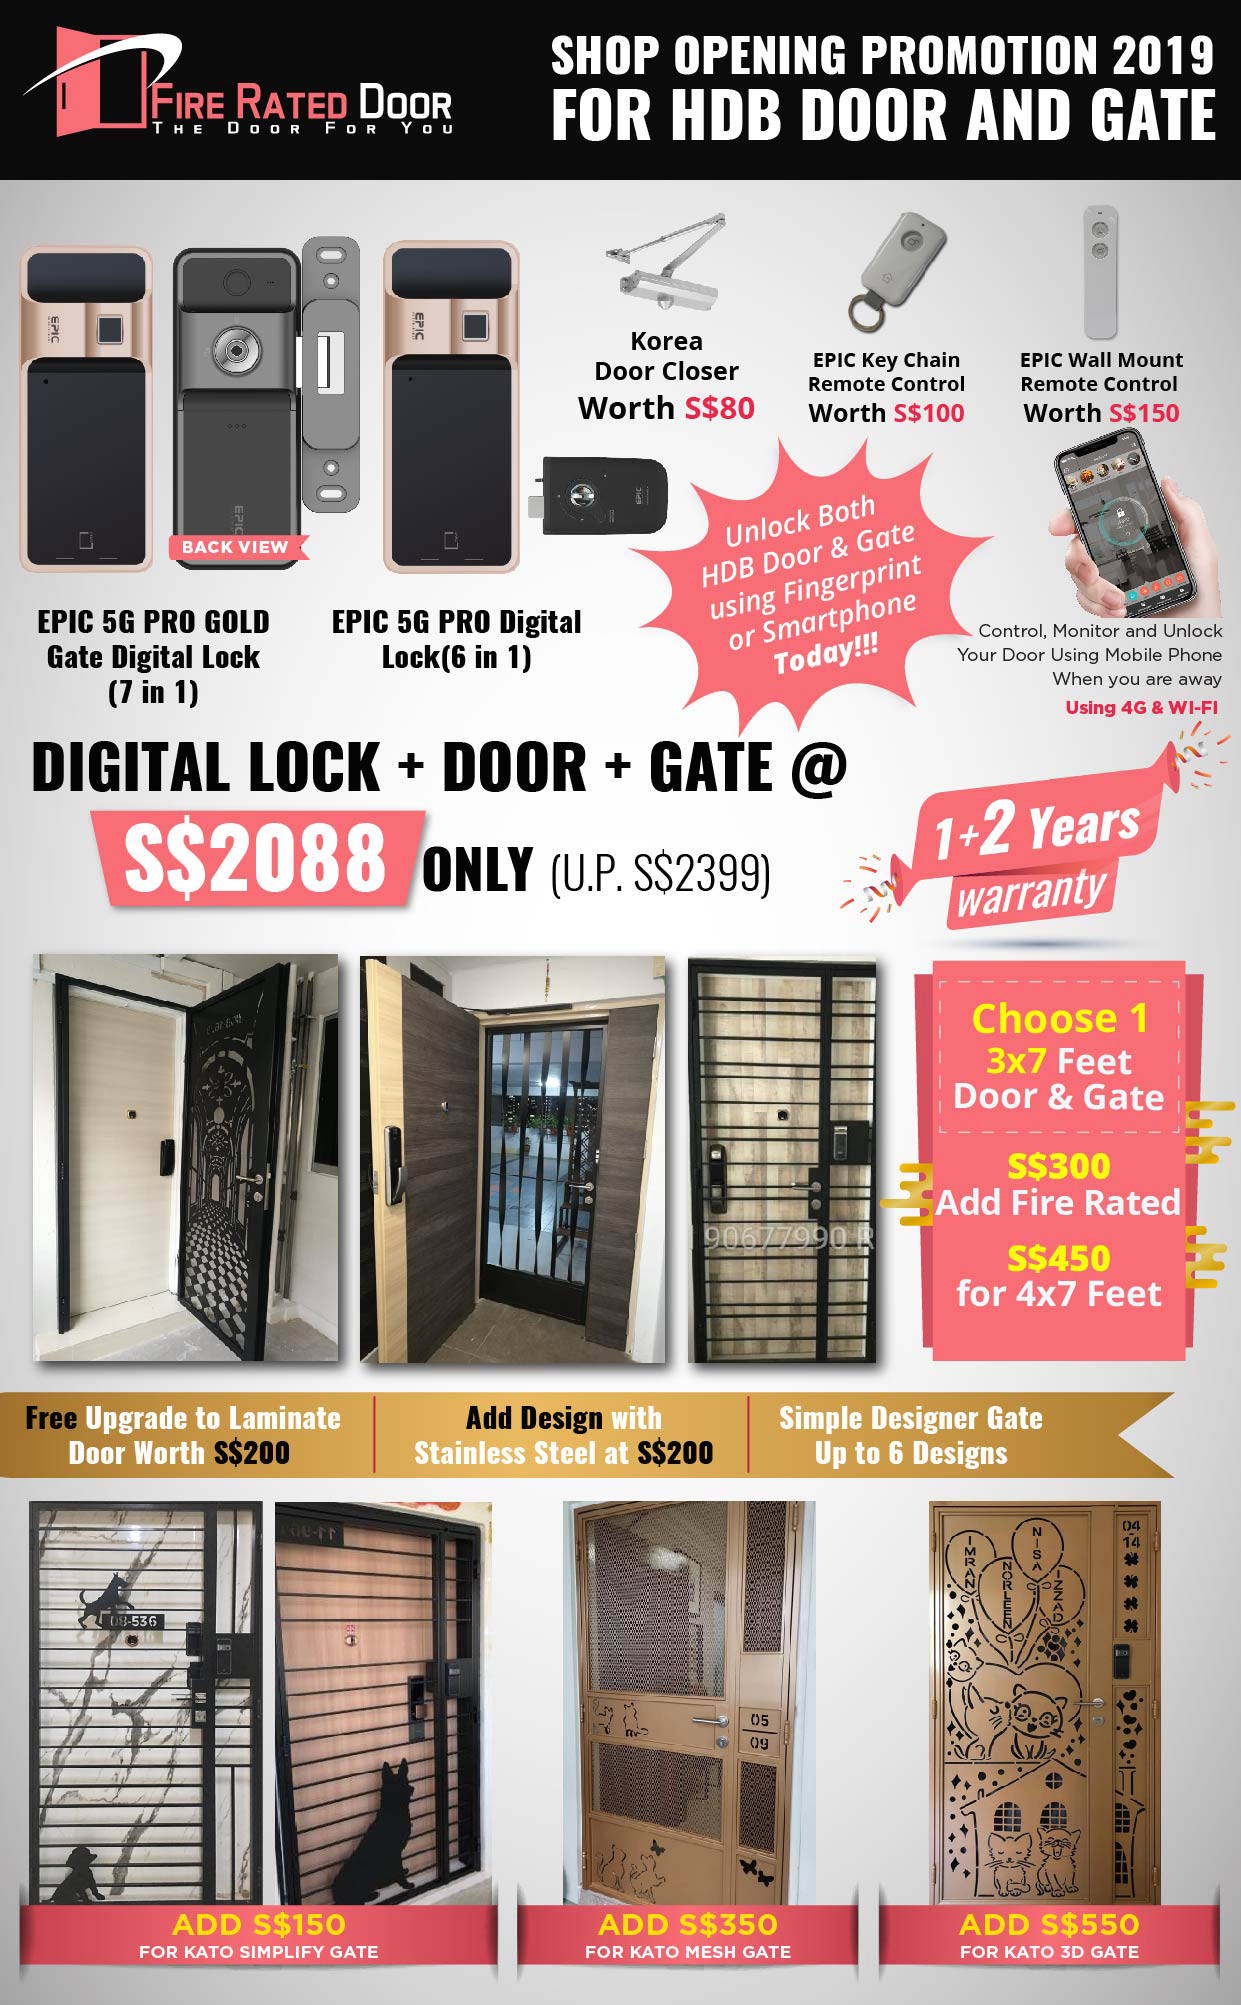 Call 96177025 to buy Gate and HDB door supplier Singapore sales